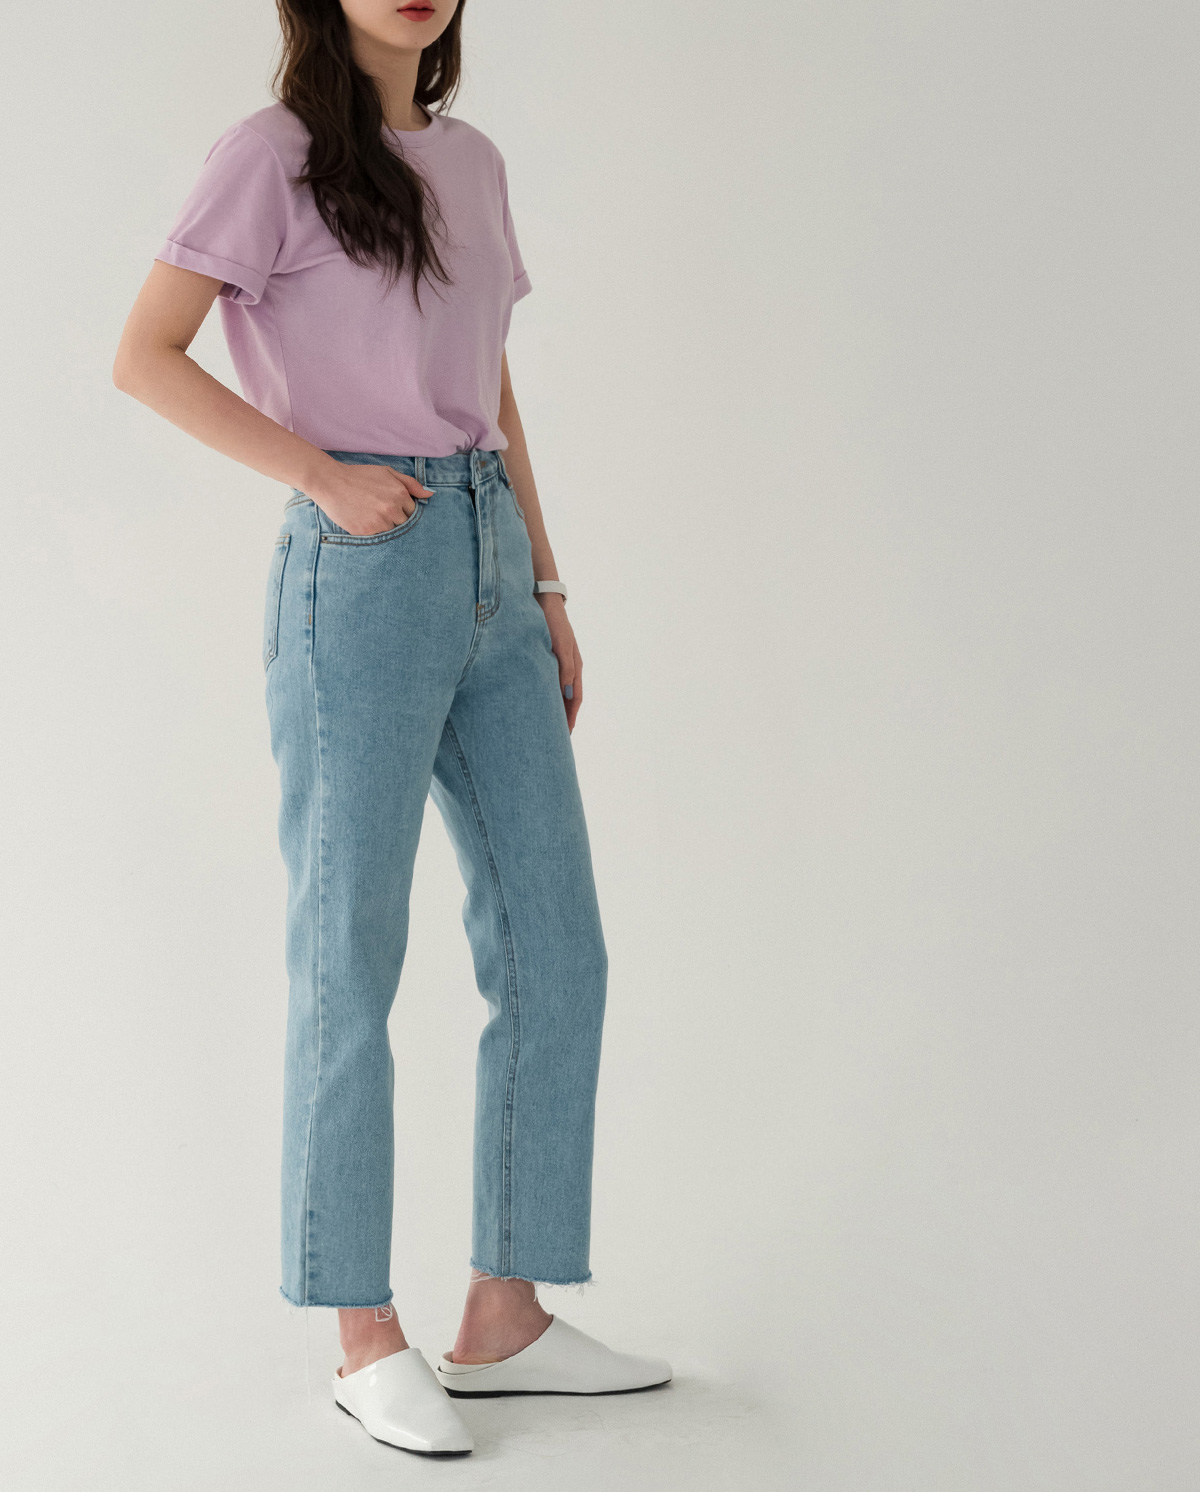 Simple straight fit cut jeans